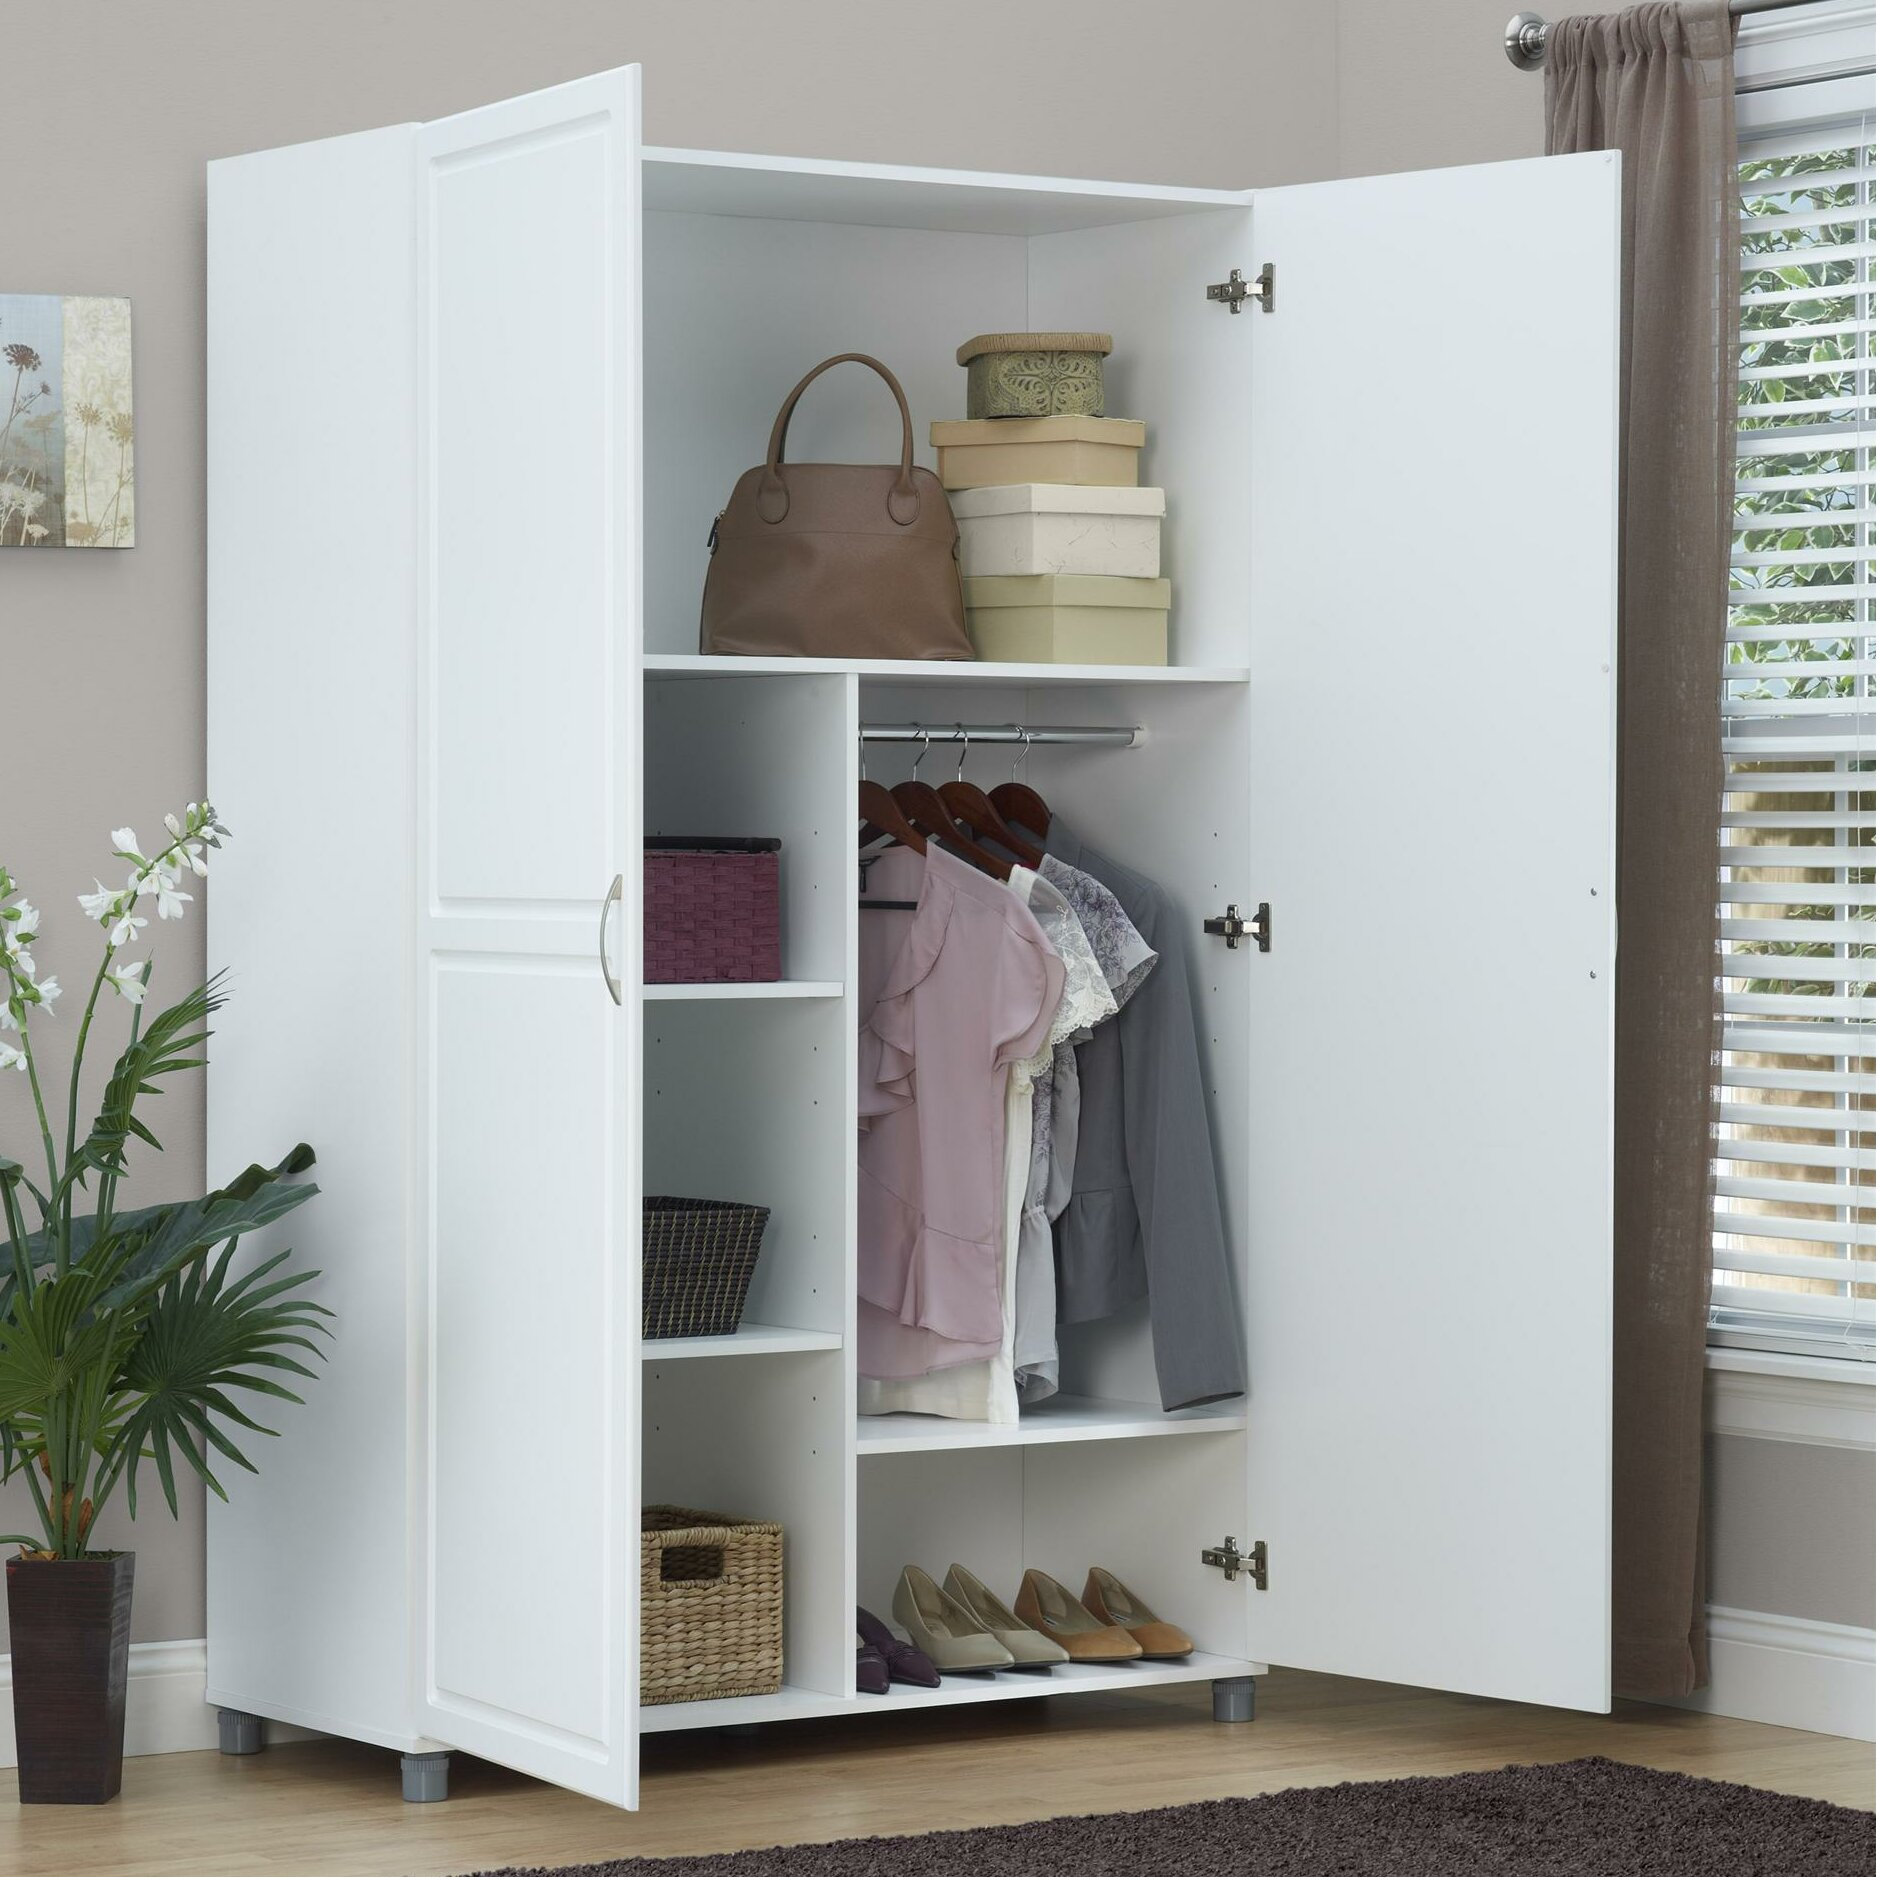 good ameriwood system build wardrobe u reviews wayfair with how to build a wardrobe closet